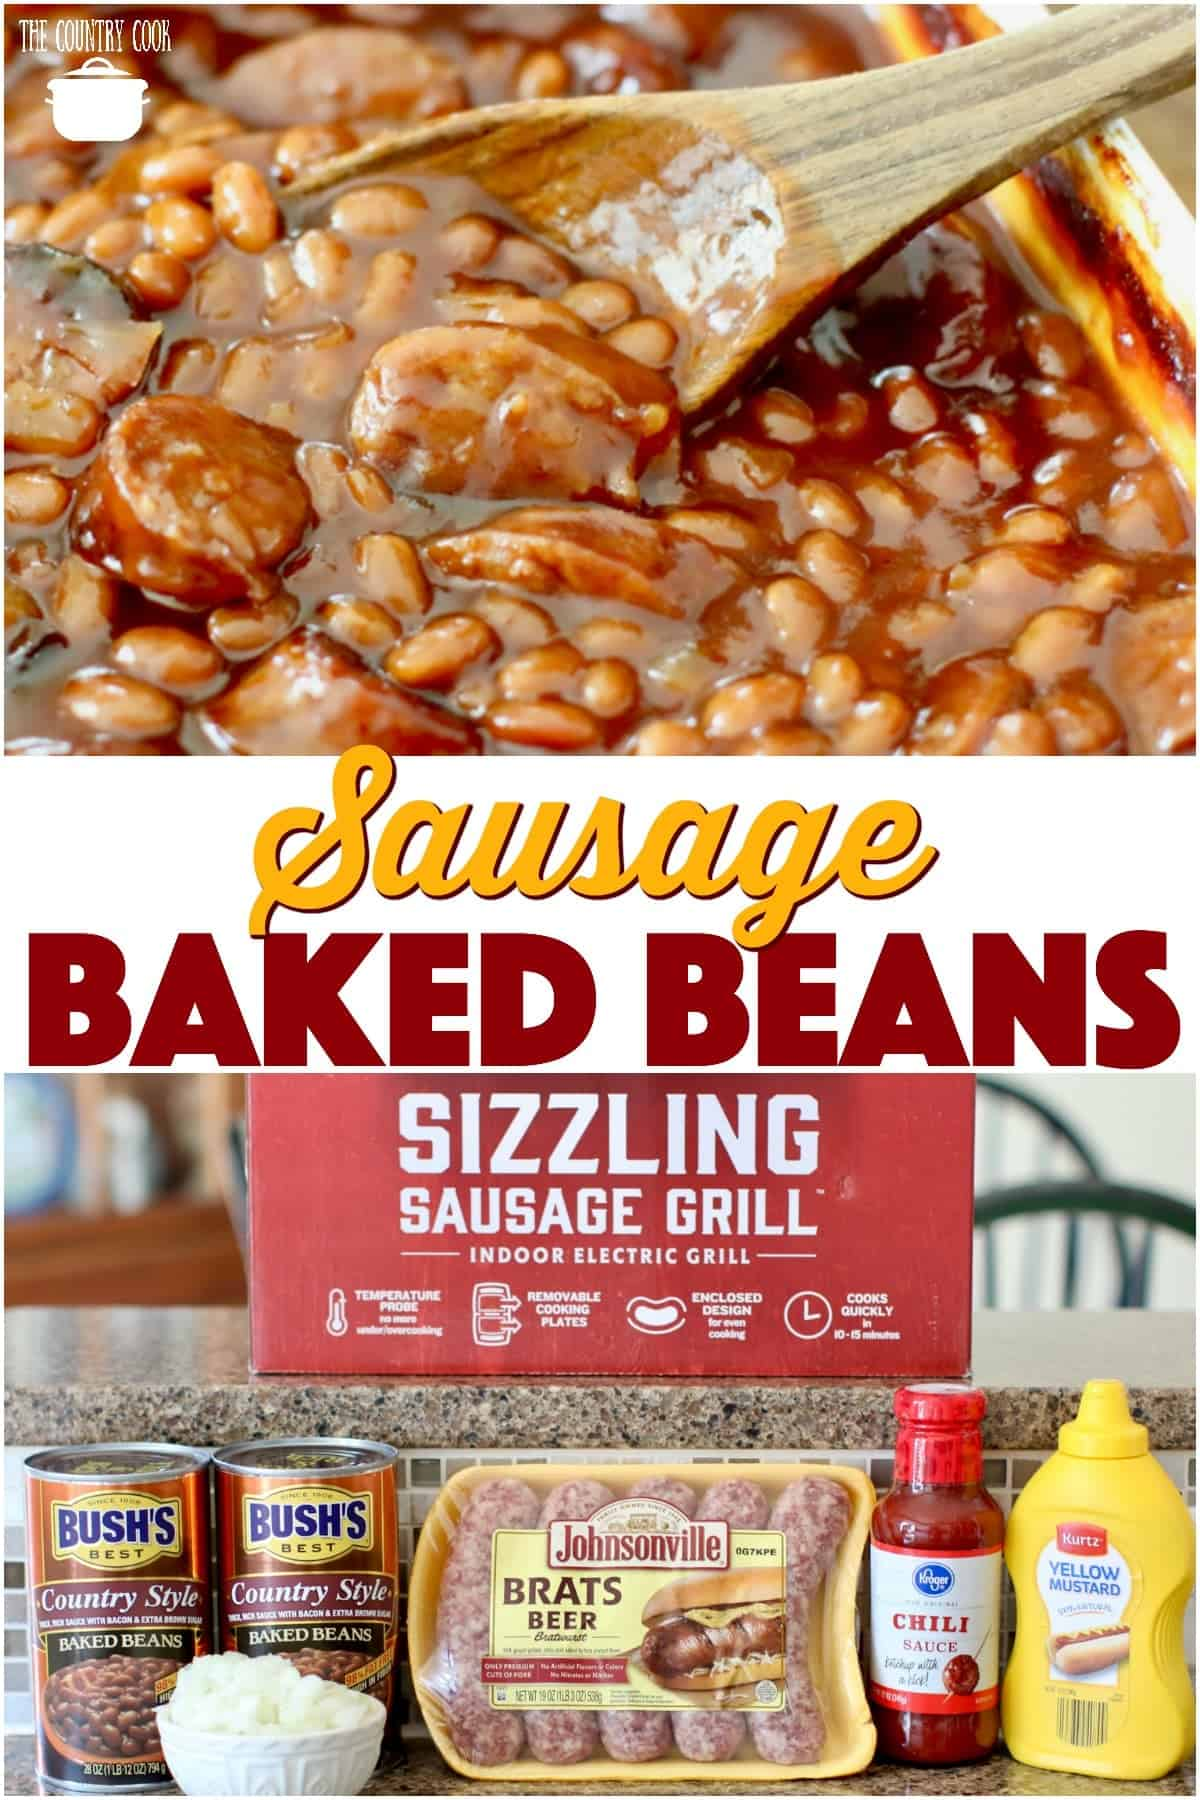 Easy Sausage Baked Beans recipe from The Country Cook #sidedish #beans #sausage #bakedbeans #cookout #bbq #barbecue #recipes #ideas